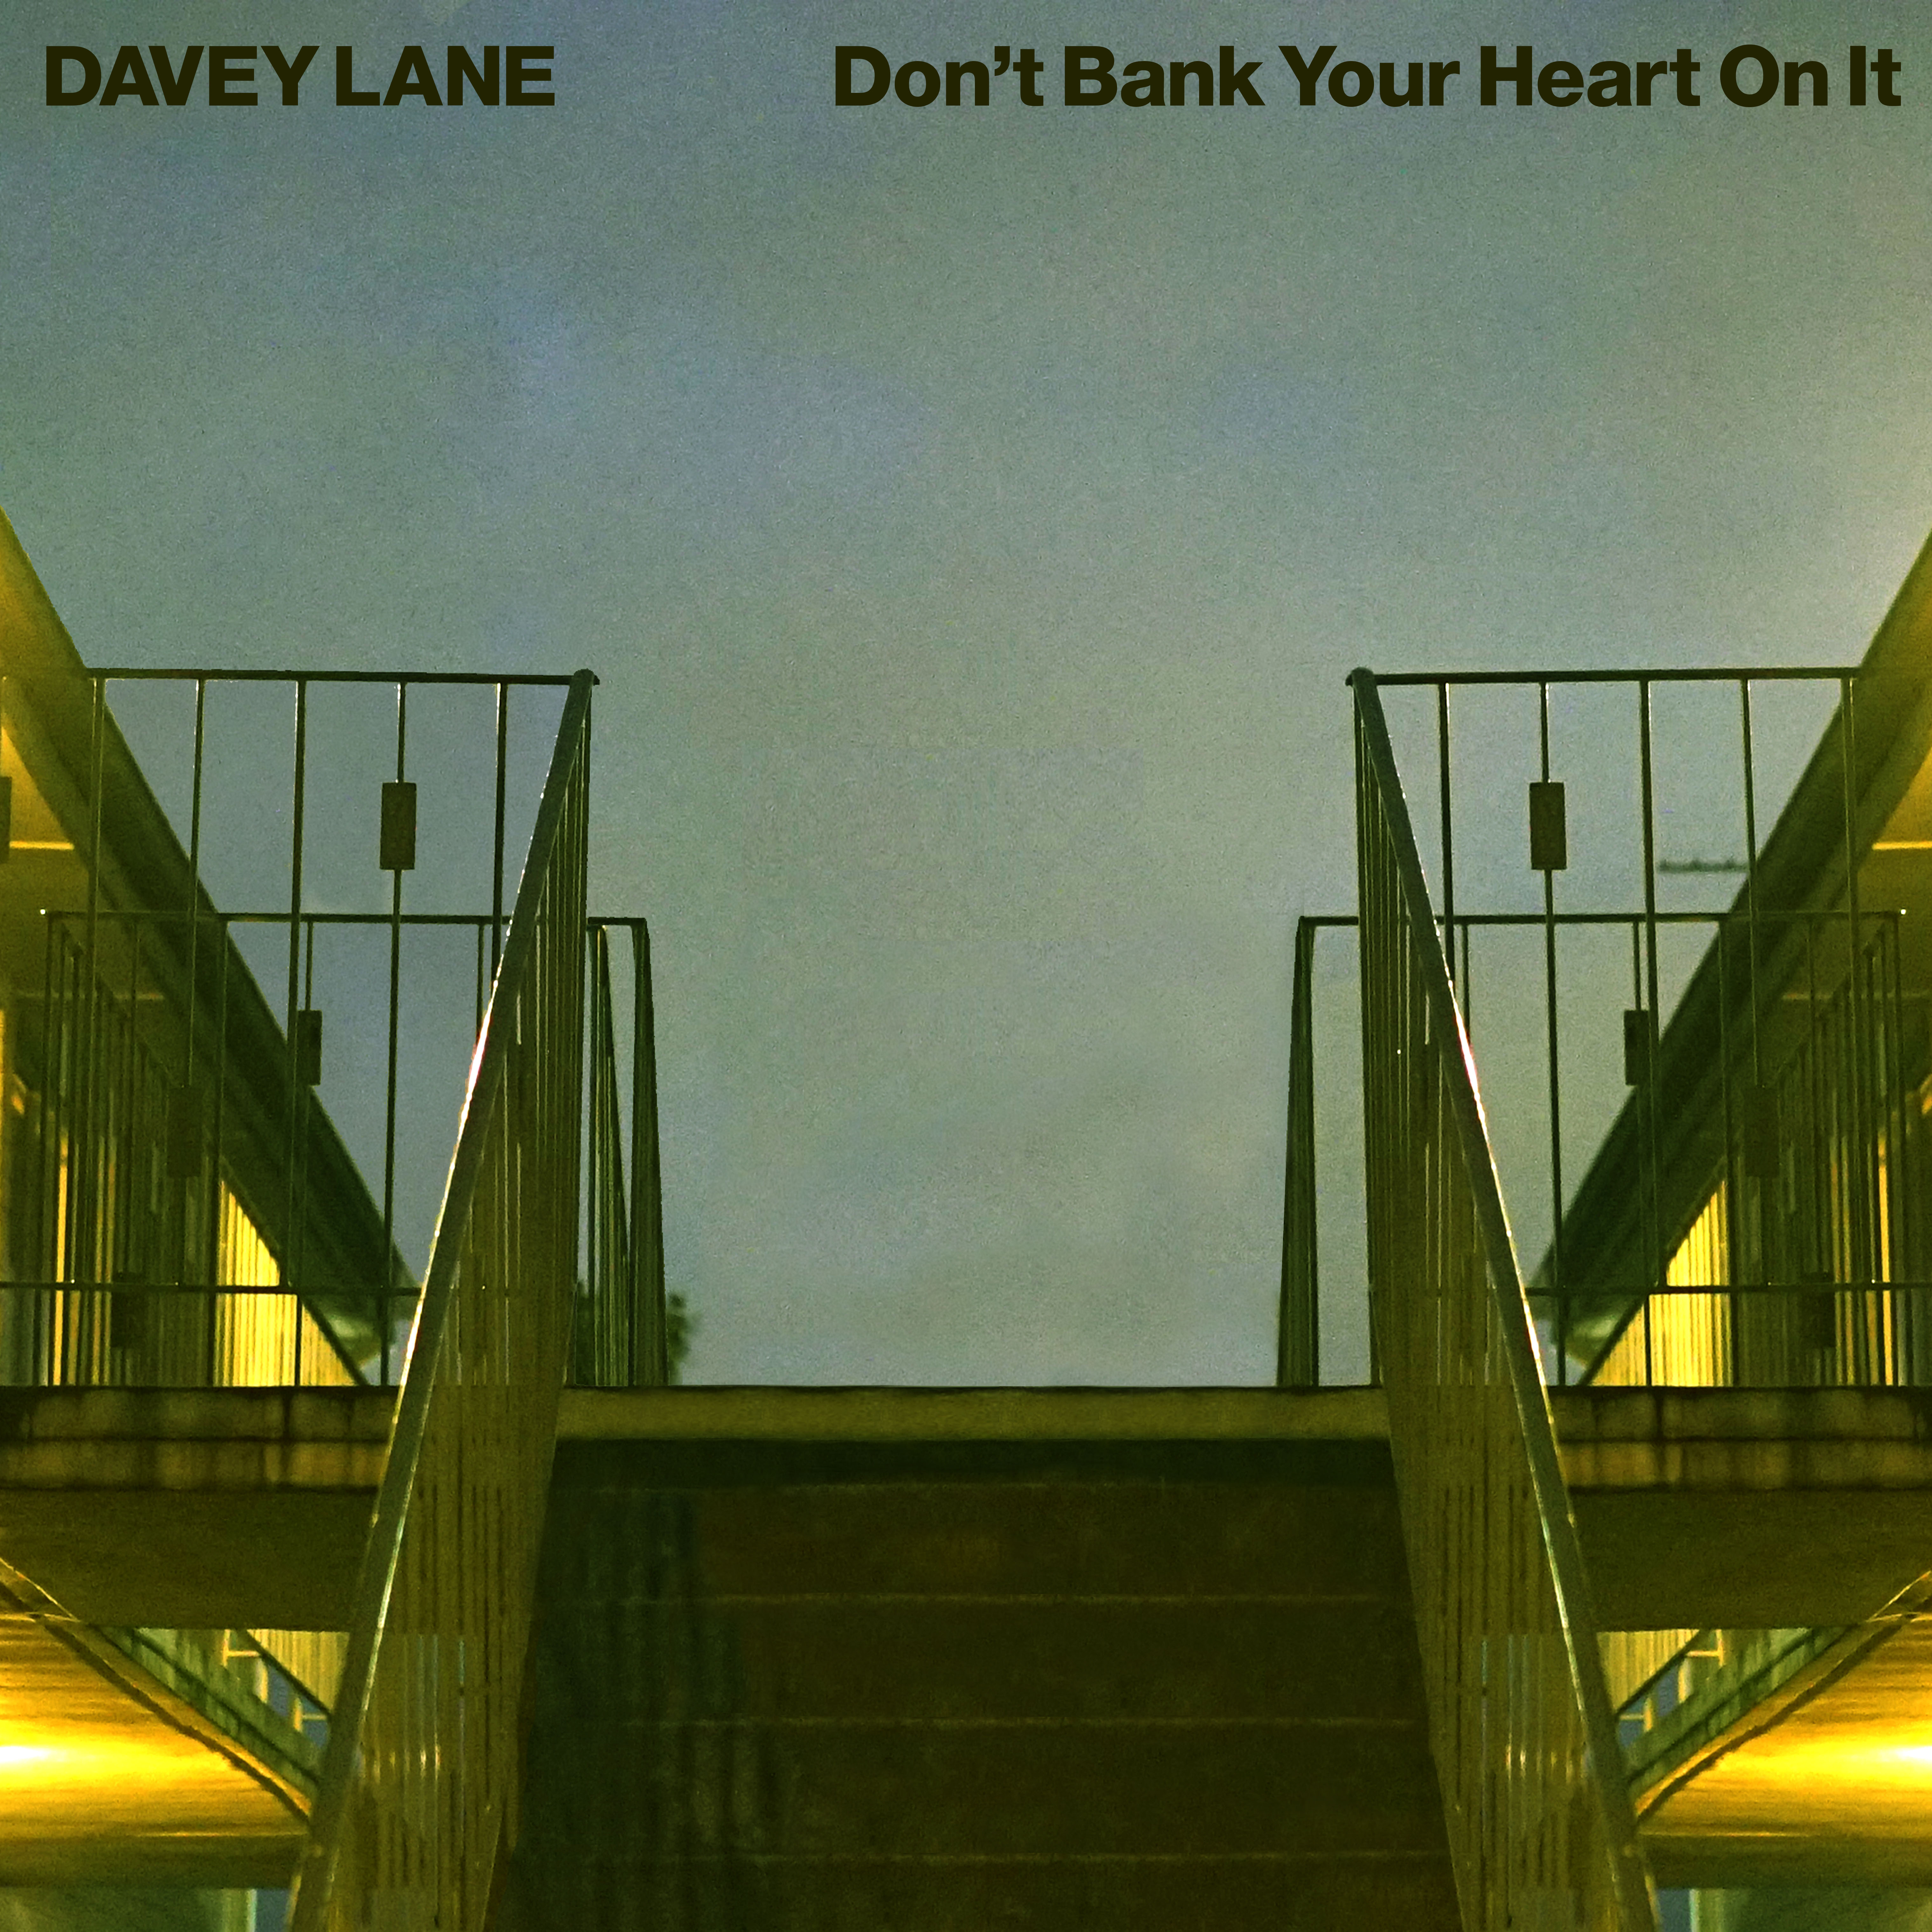 Don't Bank Your Heart On It - 12' vinyl record - Green Vinyl *limited*